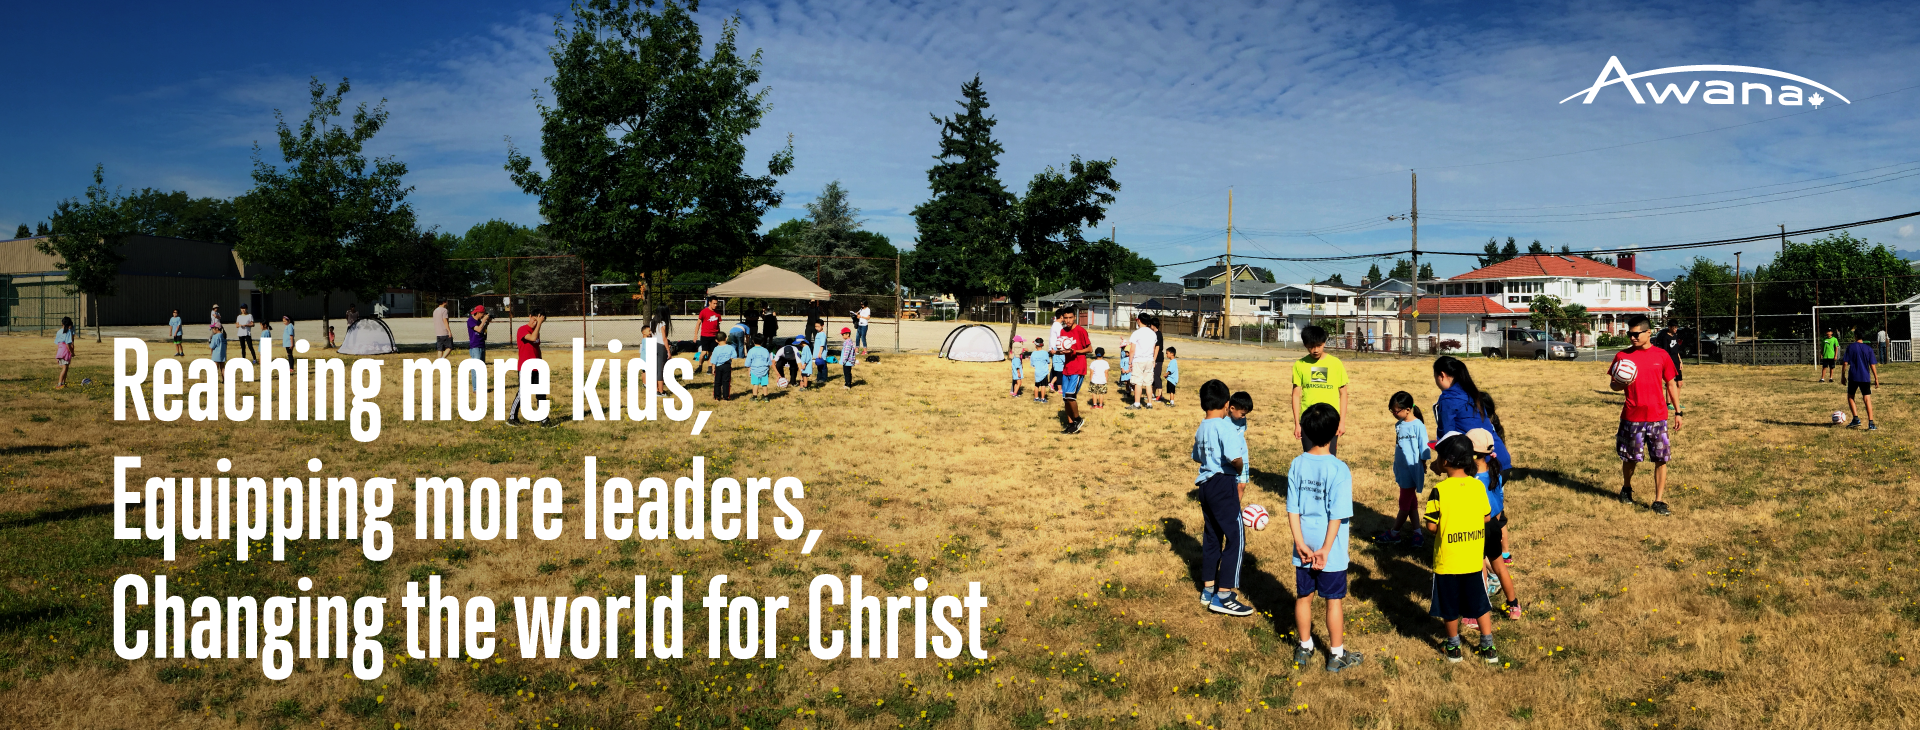 Reaching more kids,  Equipping more leaders,  Changing the world for Christ